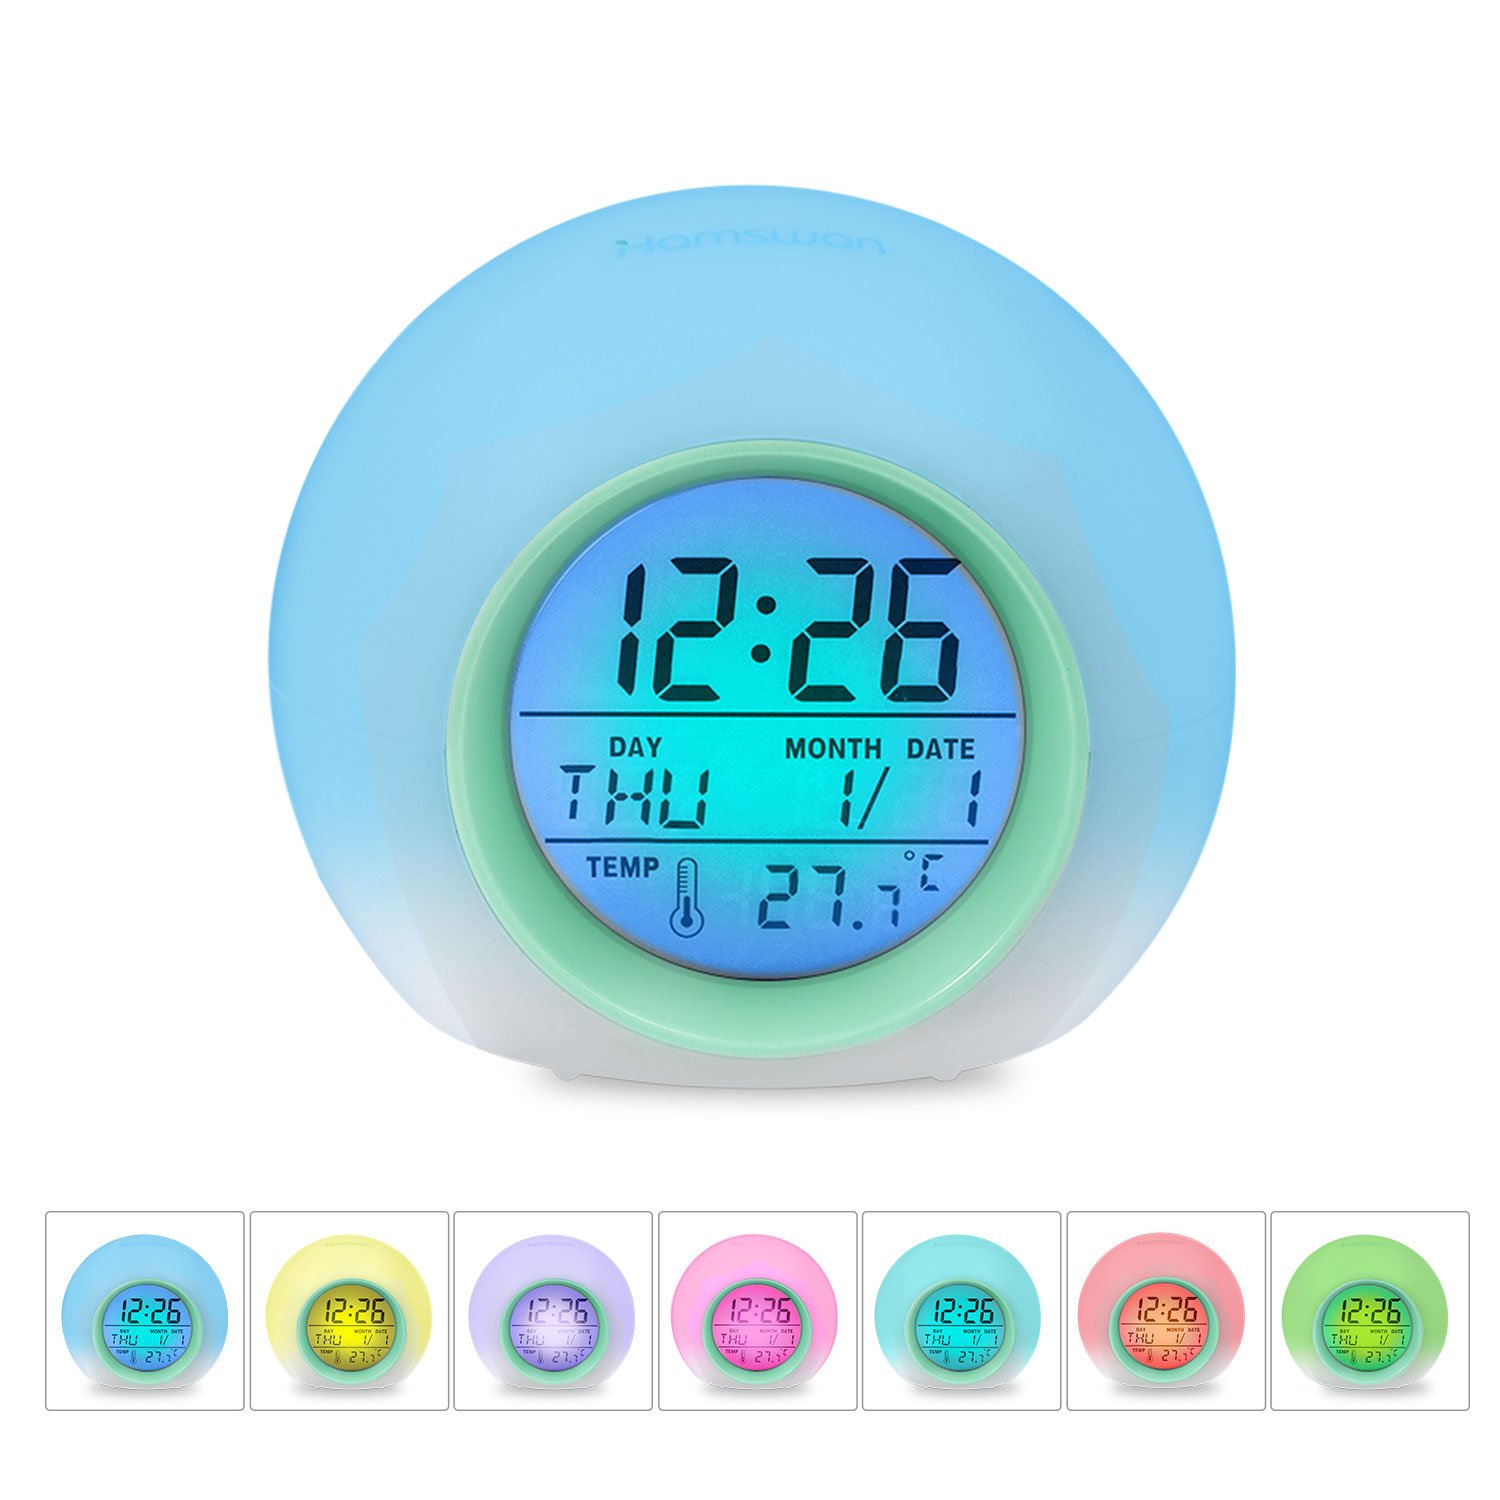 HAMSWAN Kids Alarm Clock - Wake Up Light Digital Clock with 7 Colors Changing, Touch Control and Snooze Function for Bedrooms by HAMSWAN